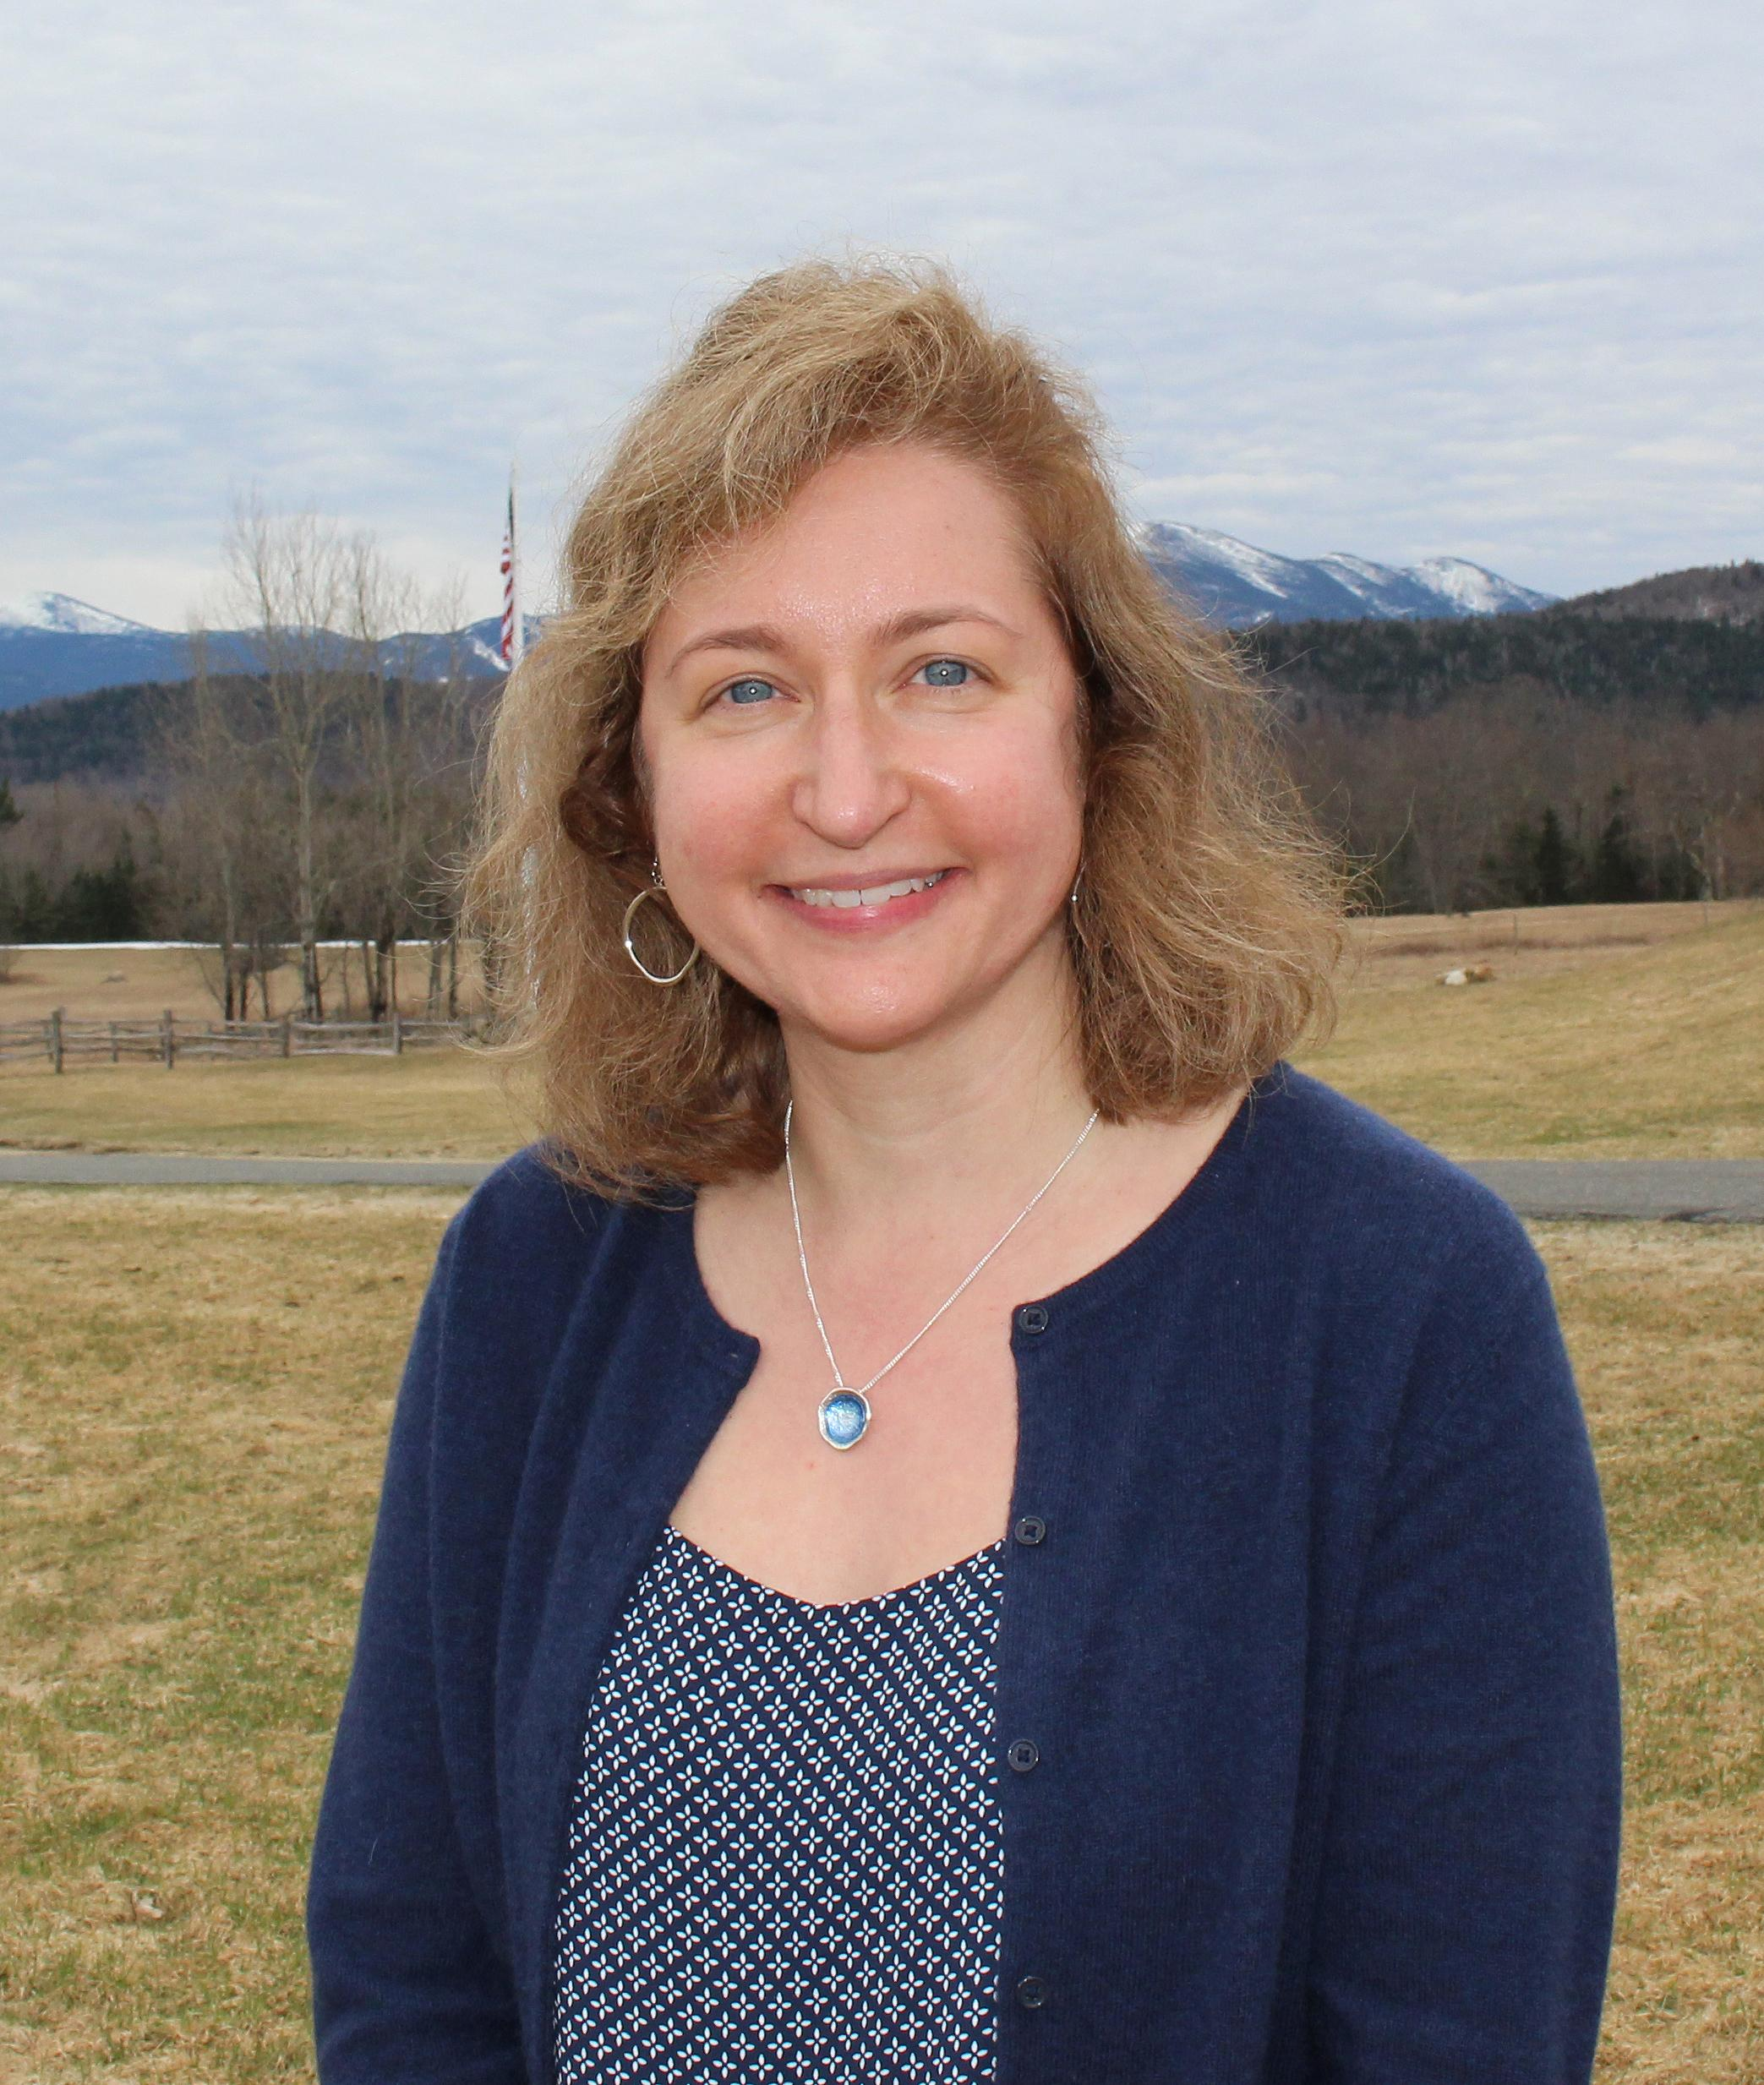 Janine Scherline, Director of Donor Engagement at Adirondack Foundation